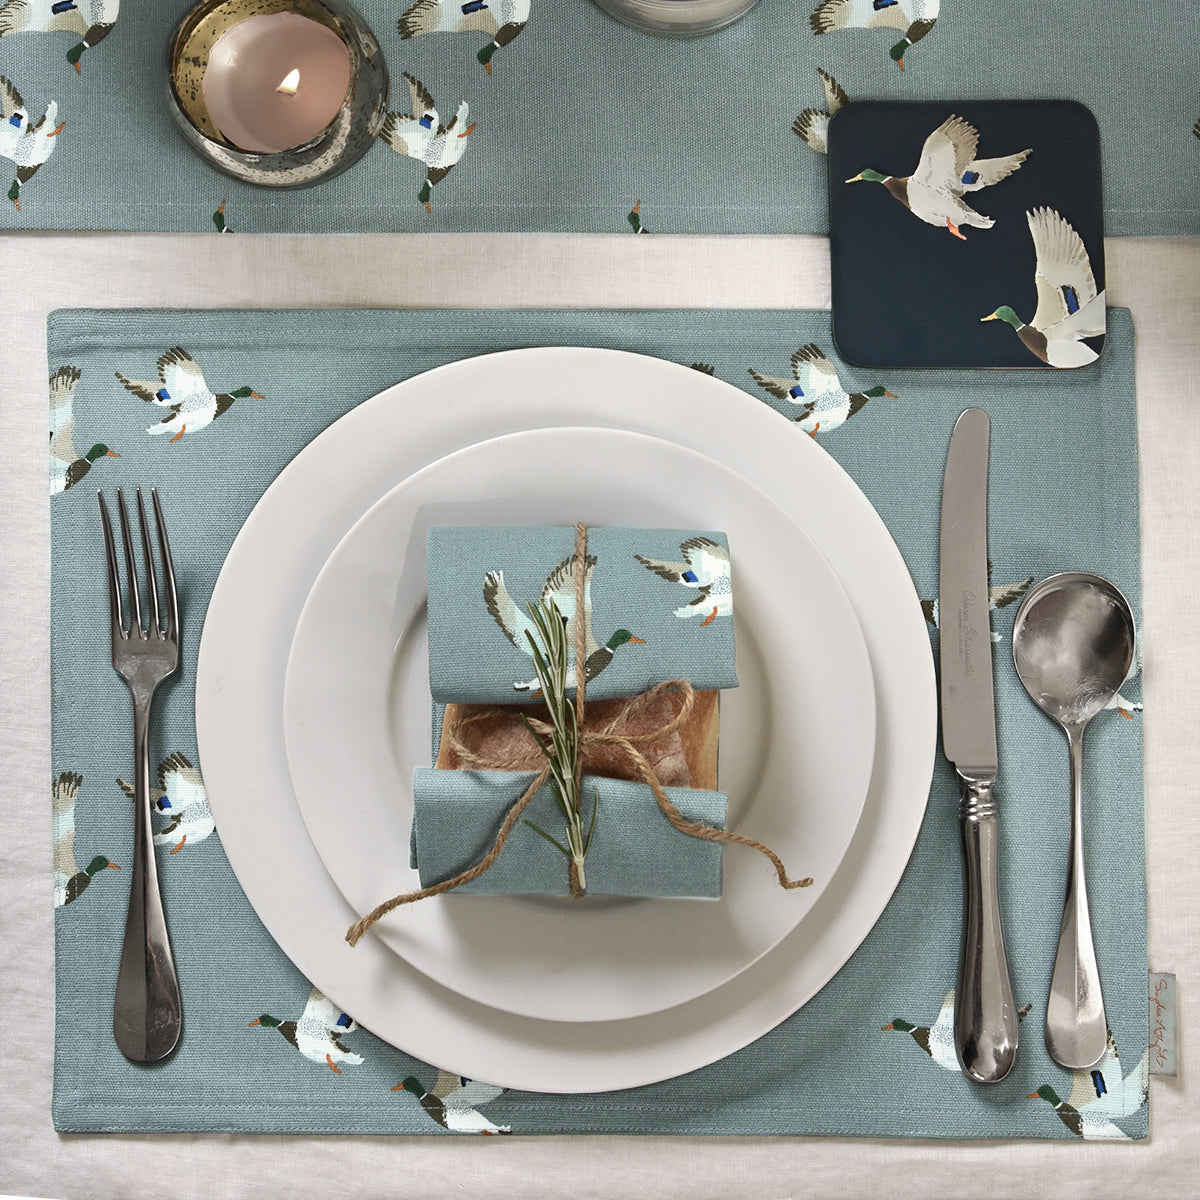 Ducks Fabric Placemat by Sophie Allport